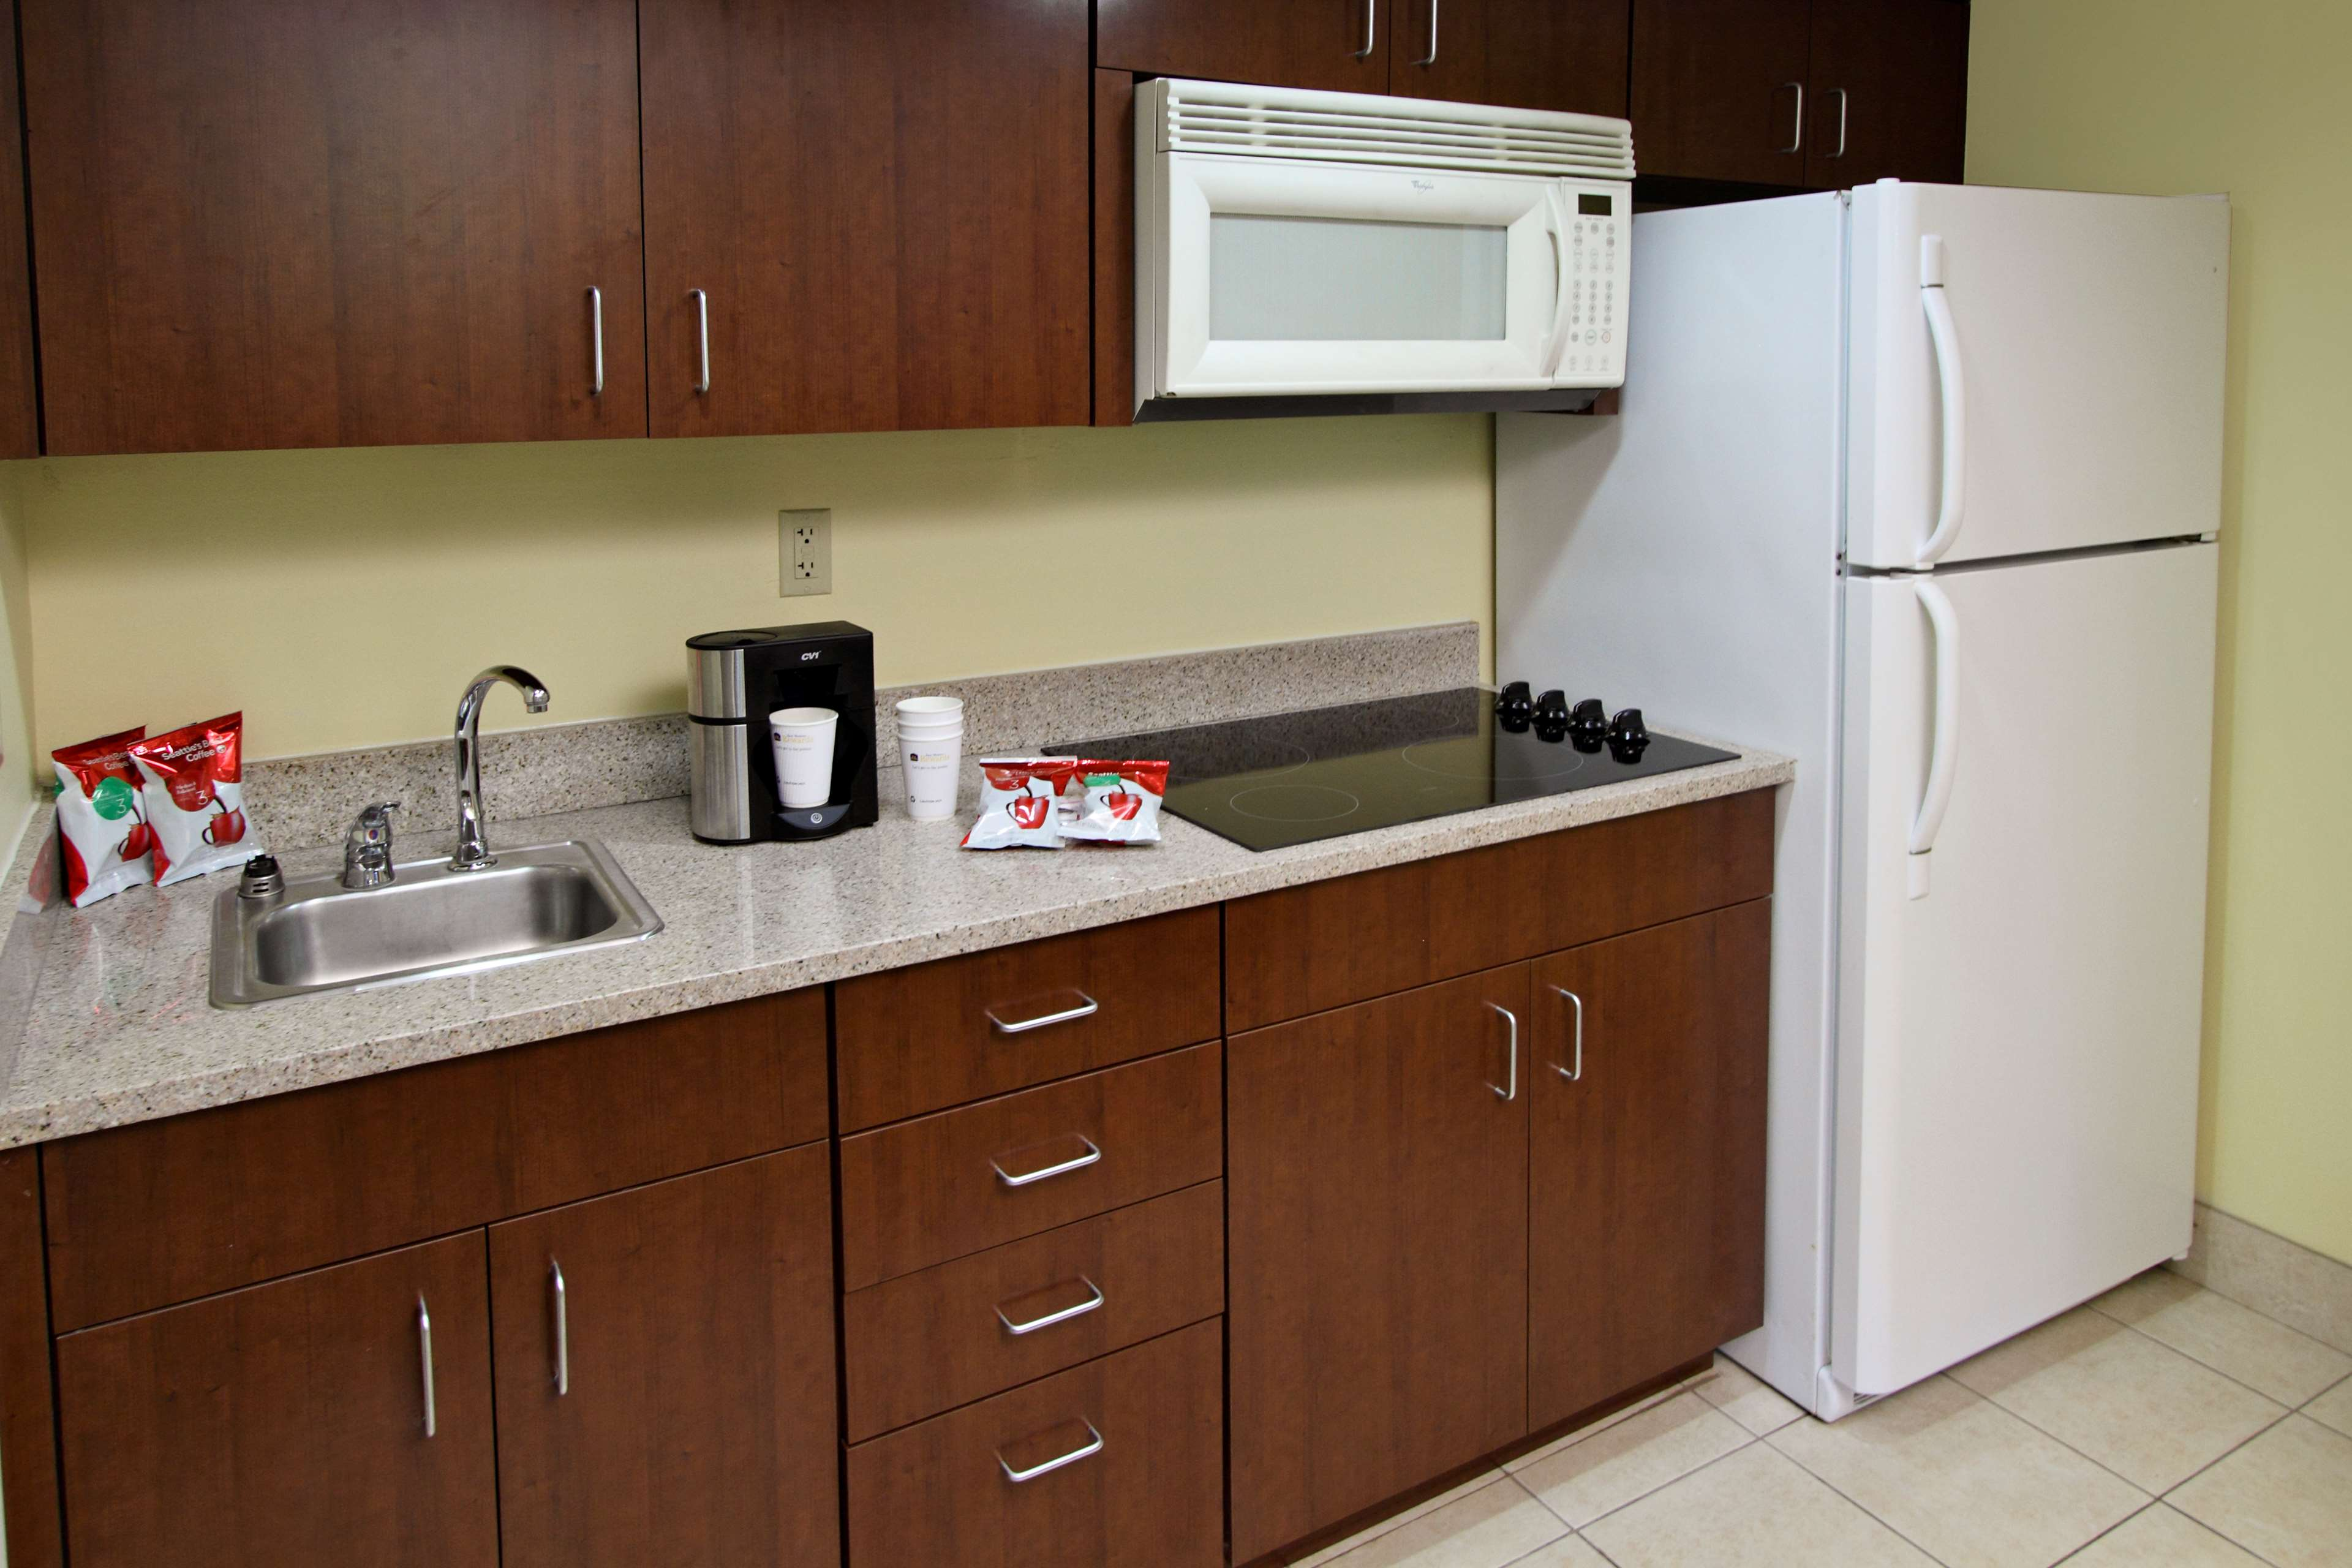 Best Western Cocoa Beach Hotel & Suites image 44